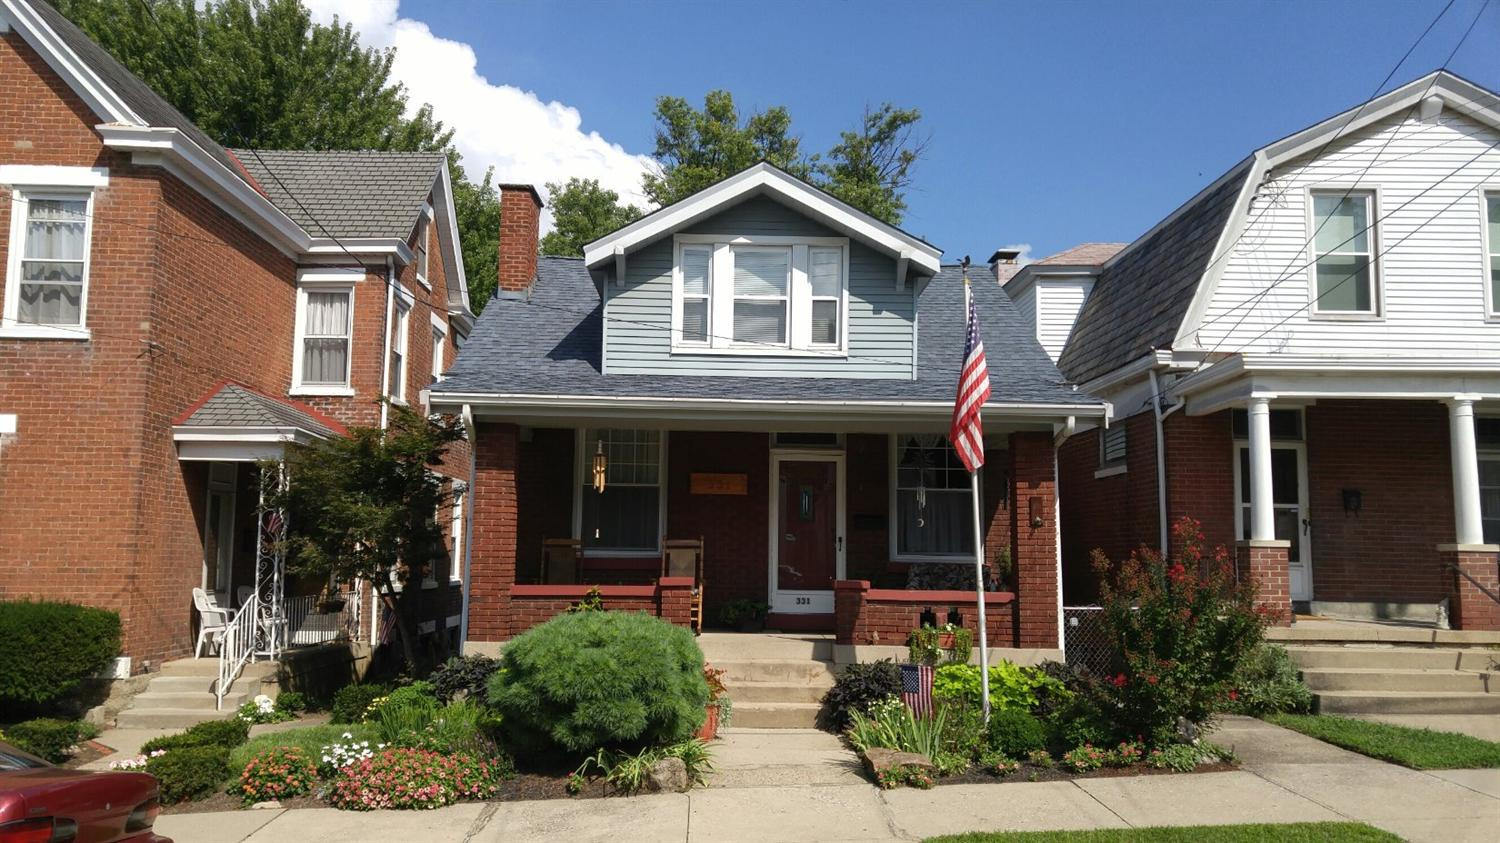 Photo 1 for 331 Grandview Ave Bellevue, KY 41073